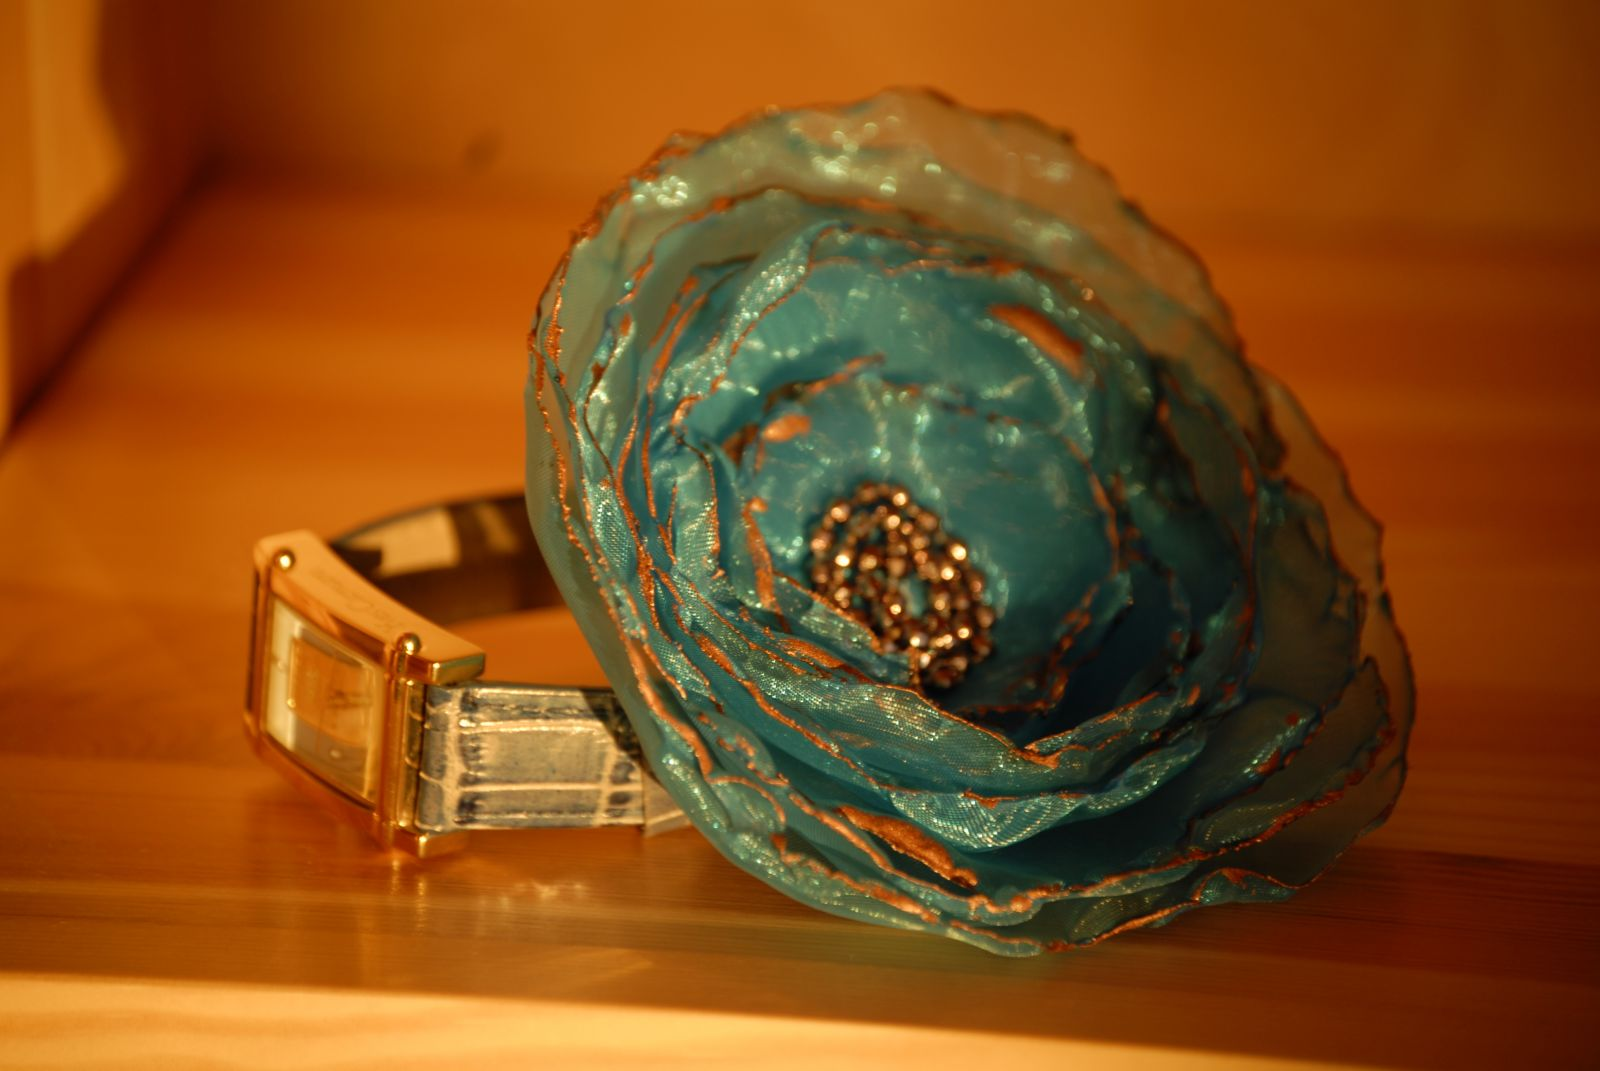 A self-made broach - flower